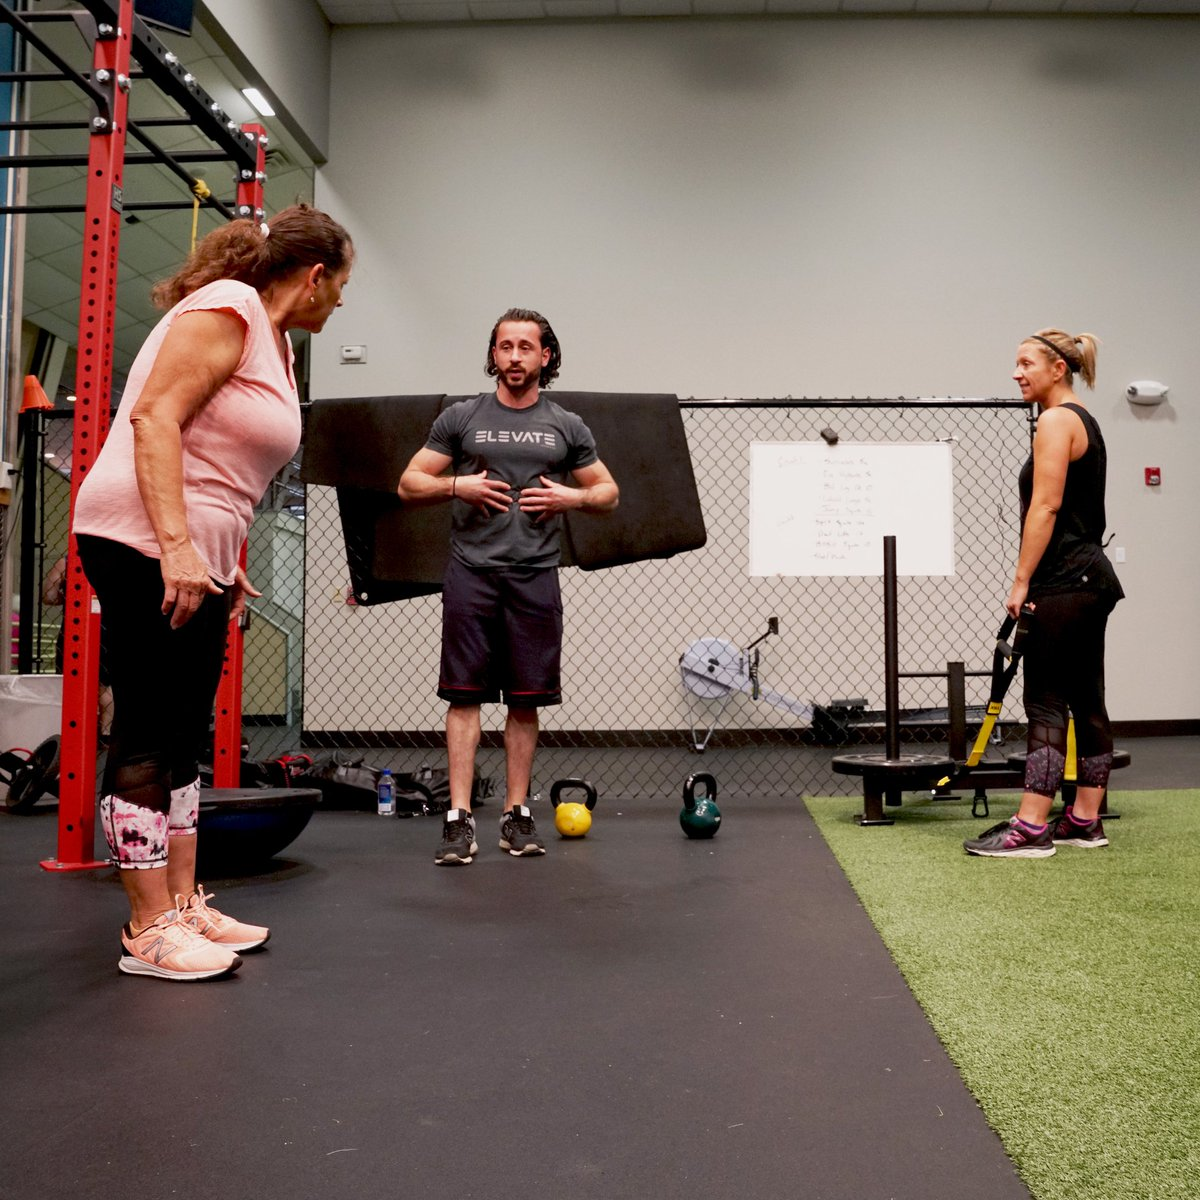 Elevate Fitness On Twitter Watch And Learn Folks Our Trainers Will Show You Step By Step How To Properly Complete A Workout Quality Of Reps Beats Quantity Of Reps Https T Co G83crsjily